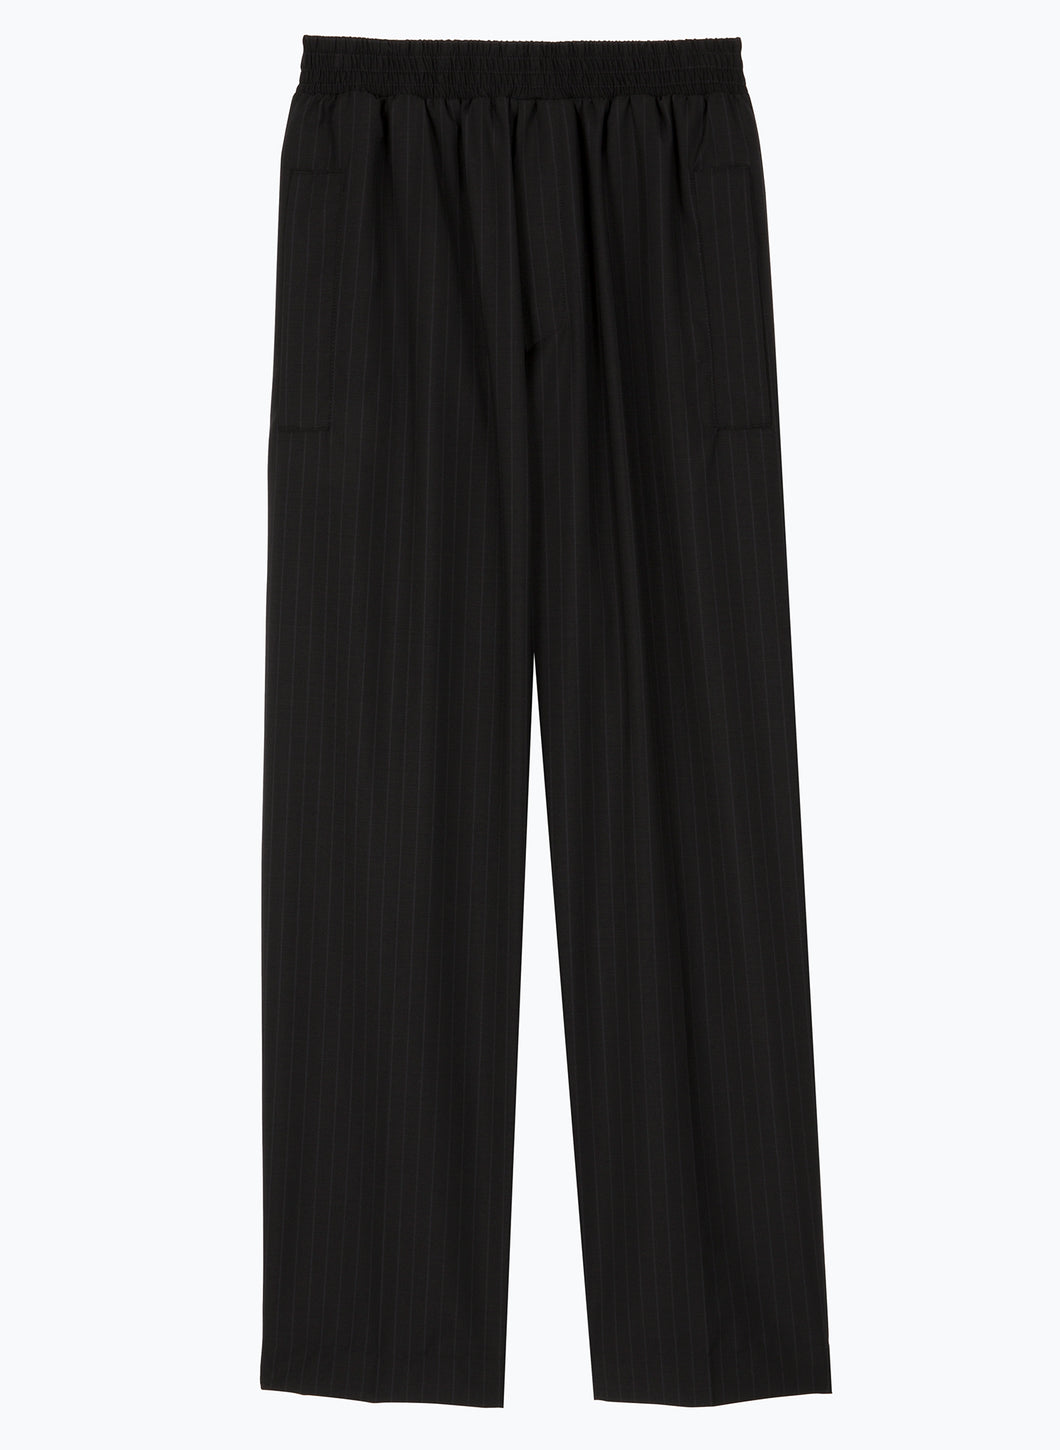 Pants with Large Elastic Waist in Black Striped Cool Wool